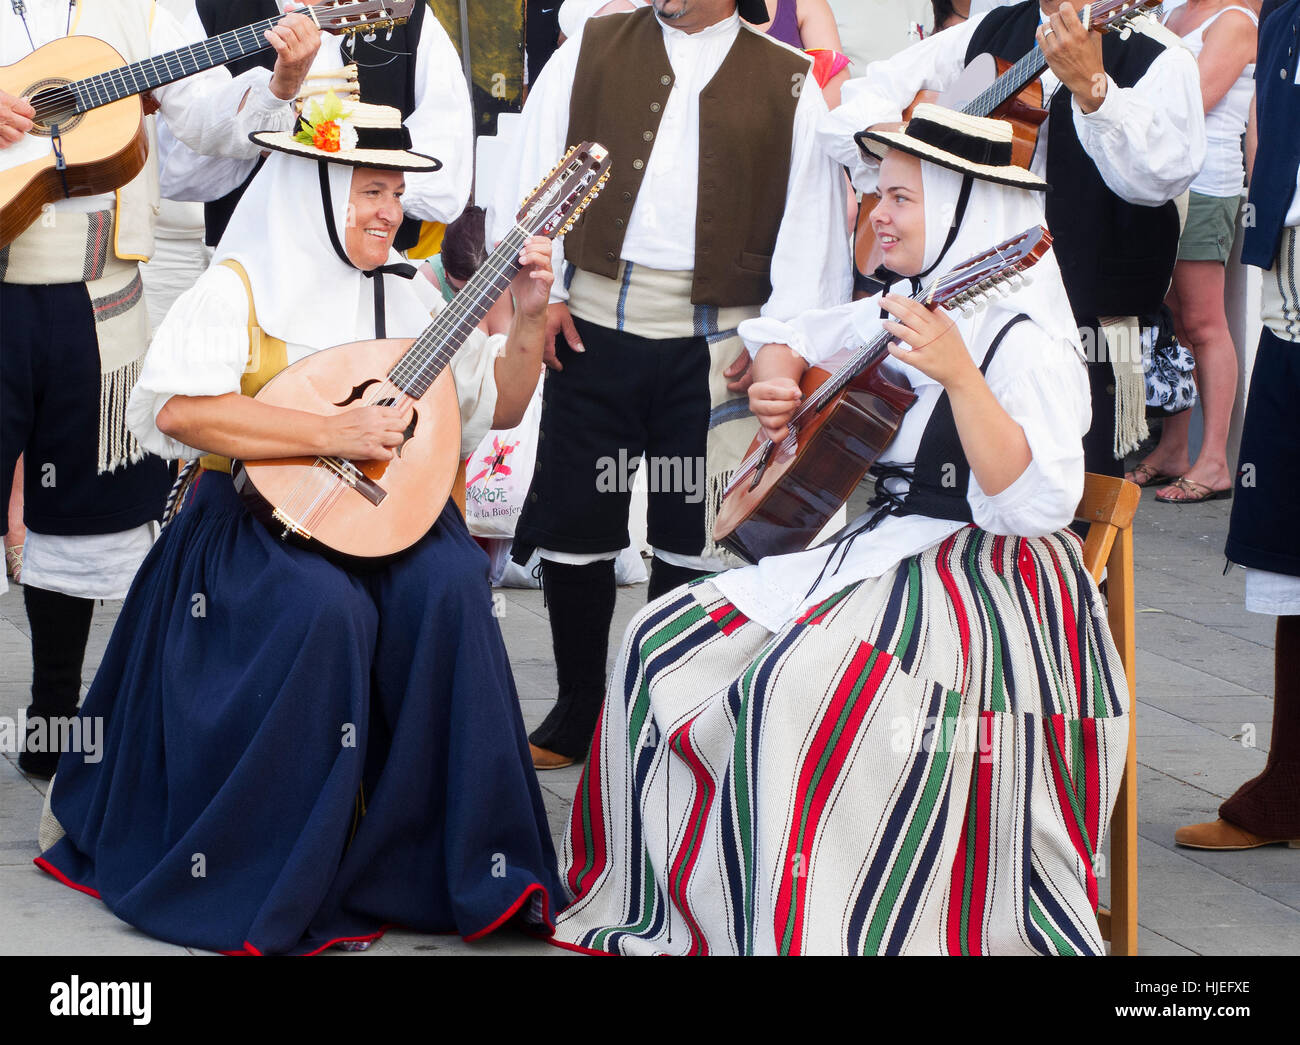 Canarian traditional Folk and Dance performers at Teguise Market Lanzarote - Stock Image